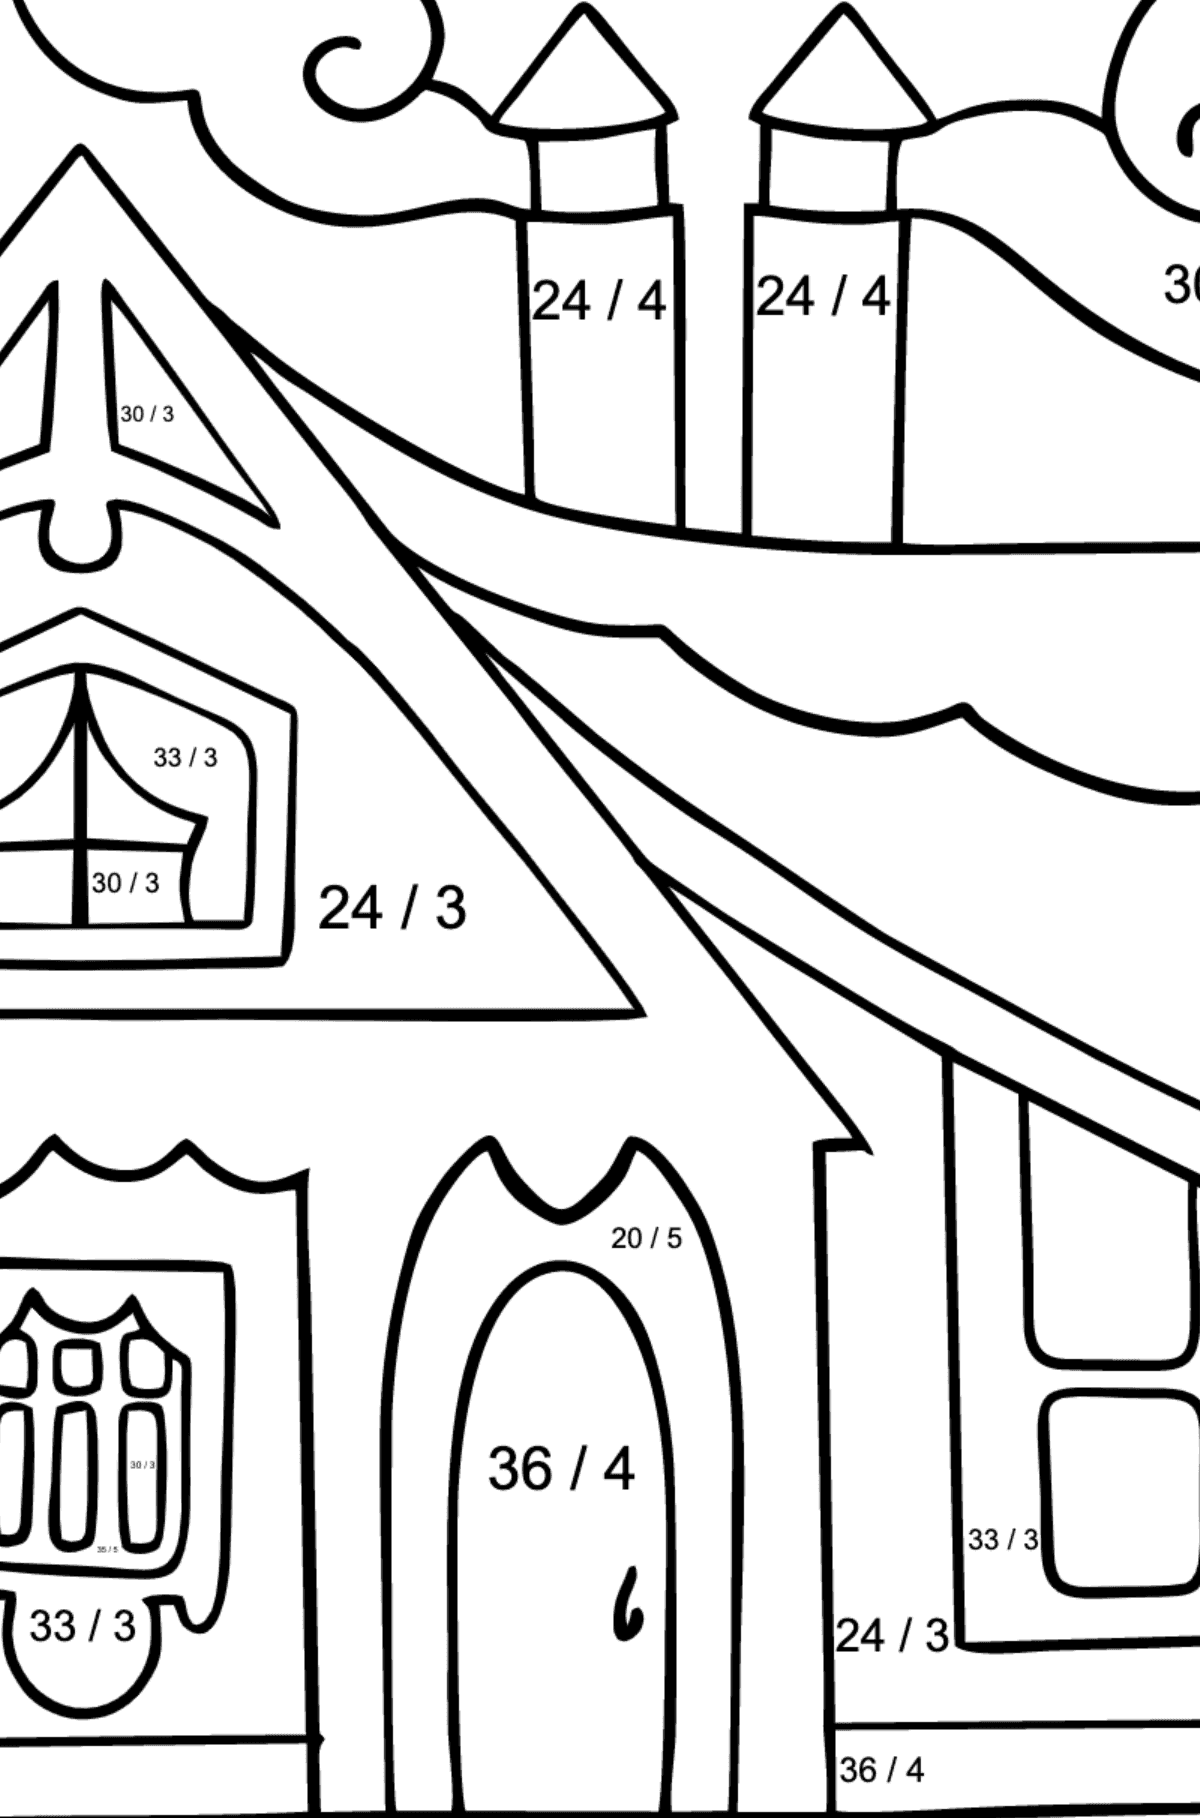 Coloring Page - A Tiny House - Math Coloring - Division for Children